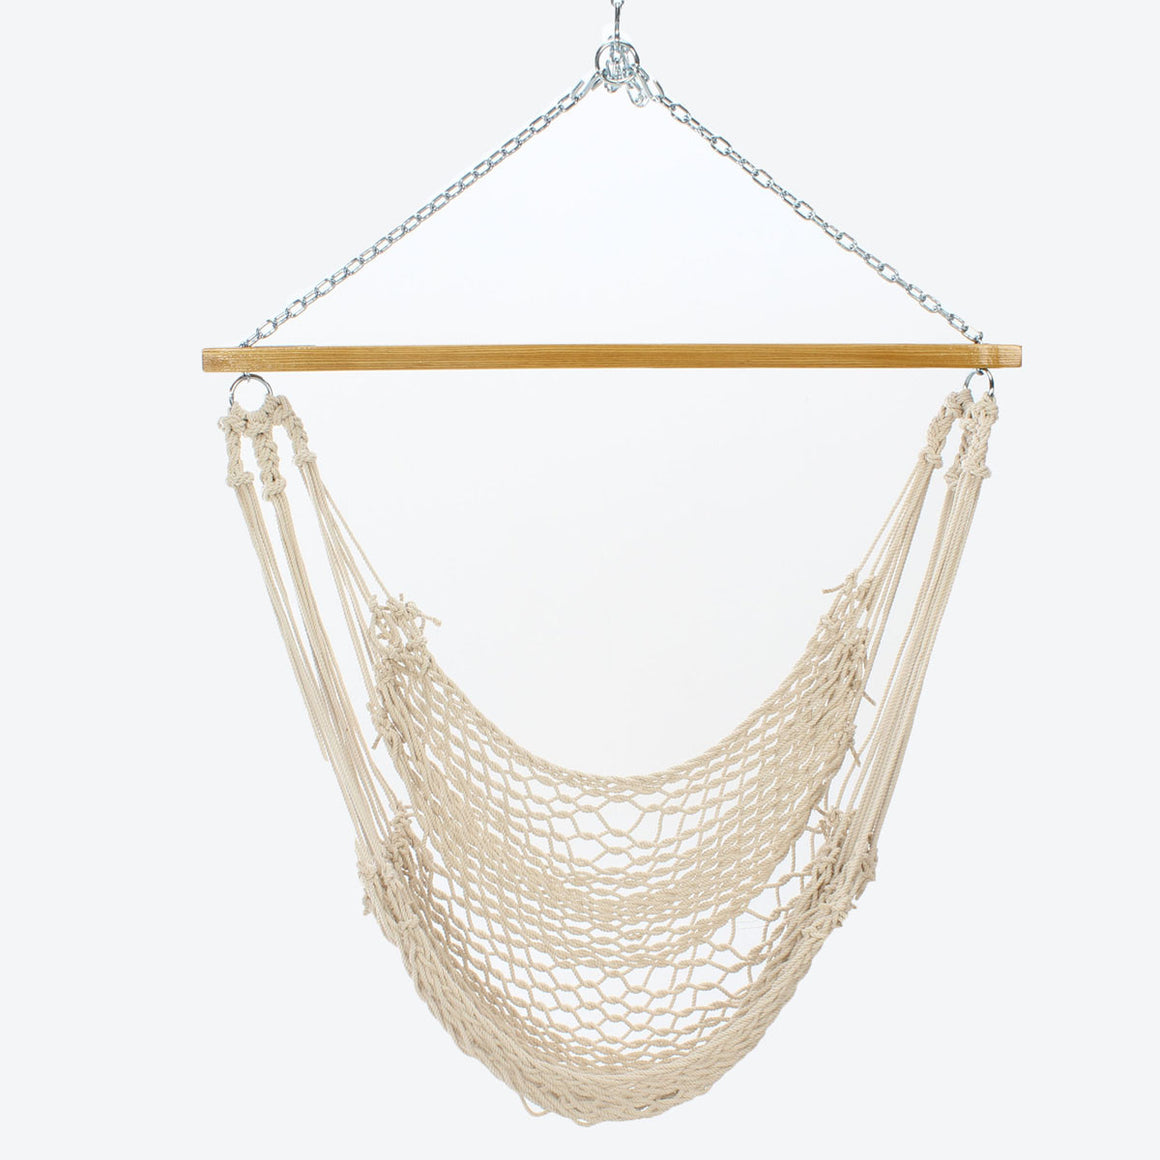 hammock chair islandbayropehammockchair bay cfm hayneedle inuse island rope product cotton